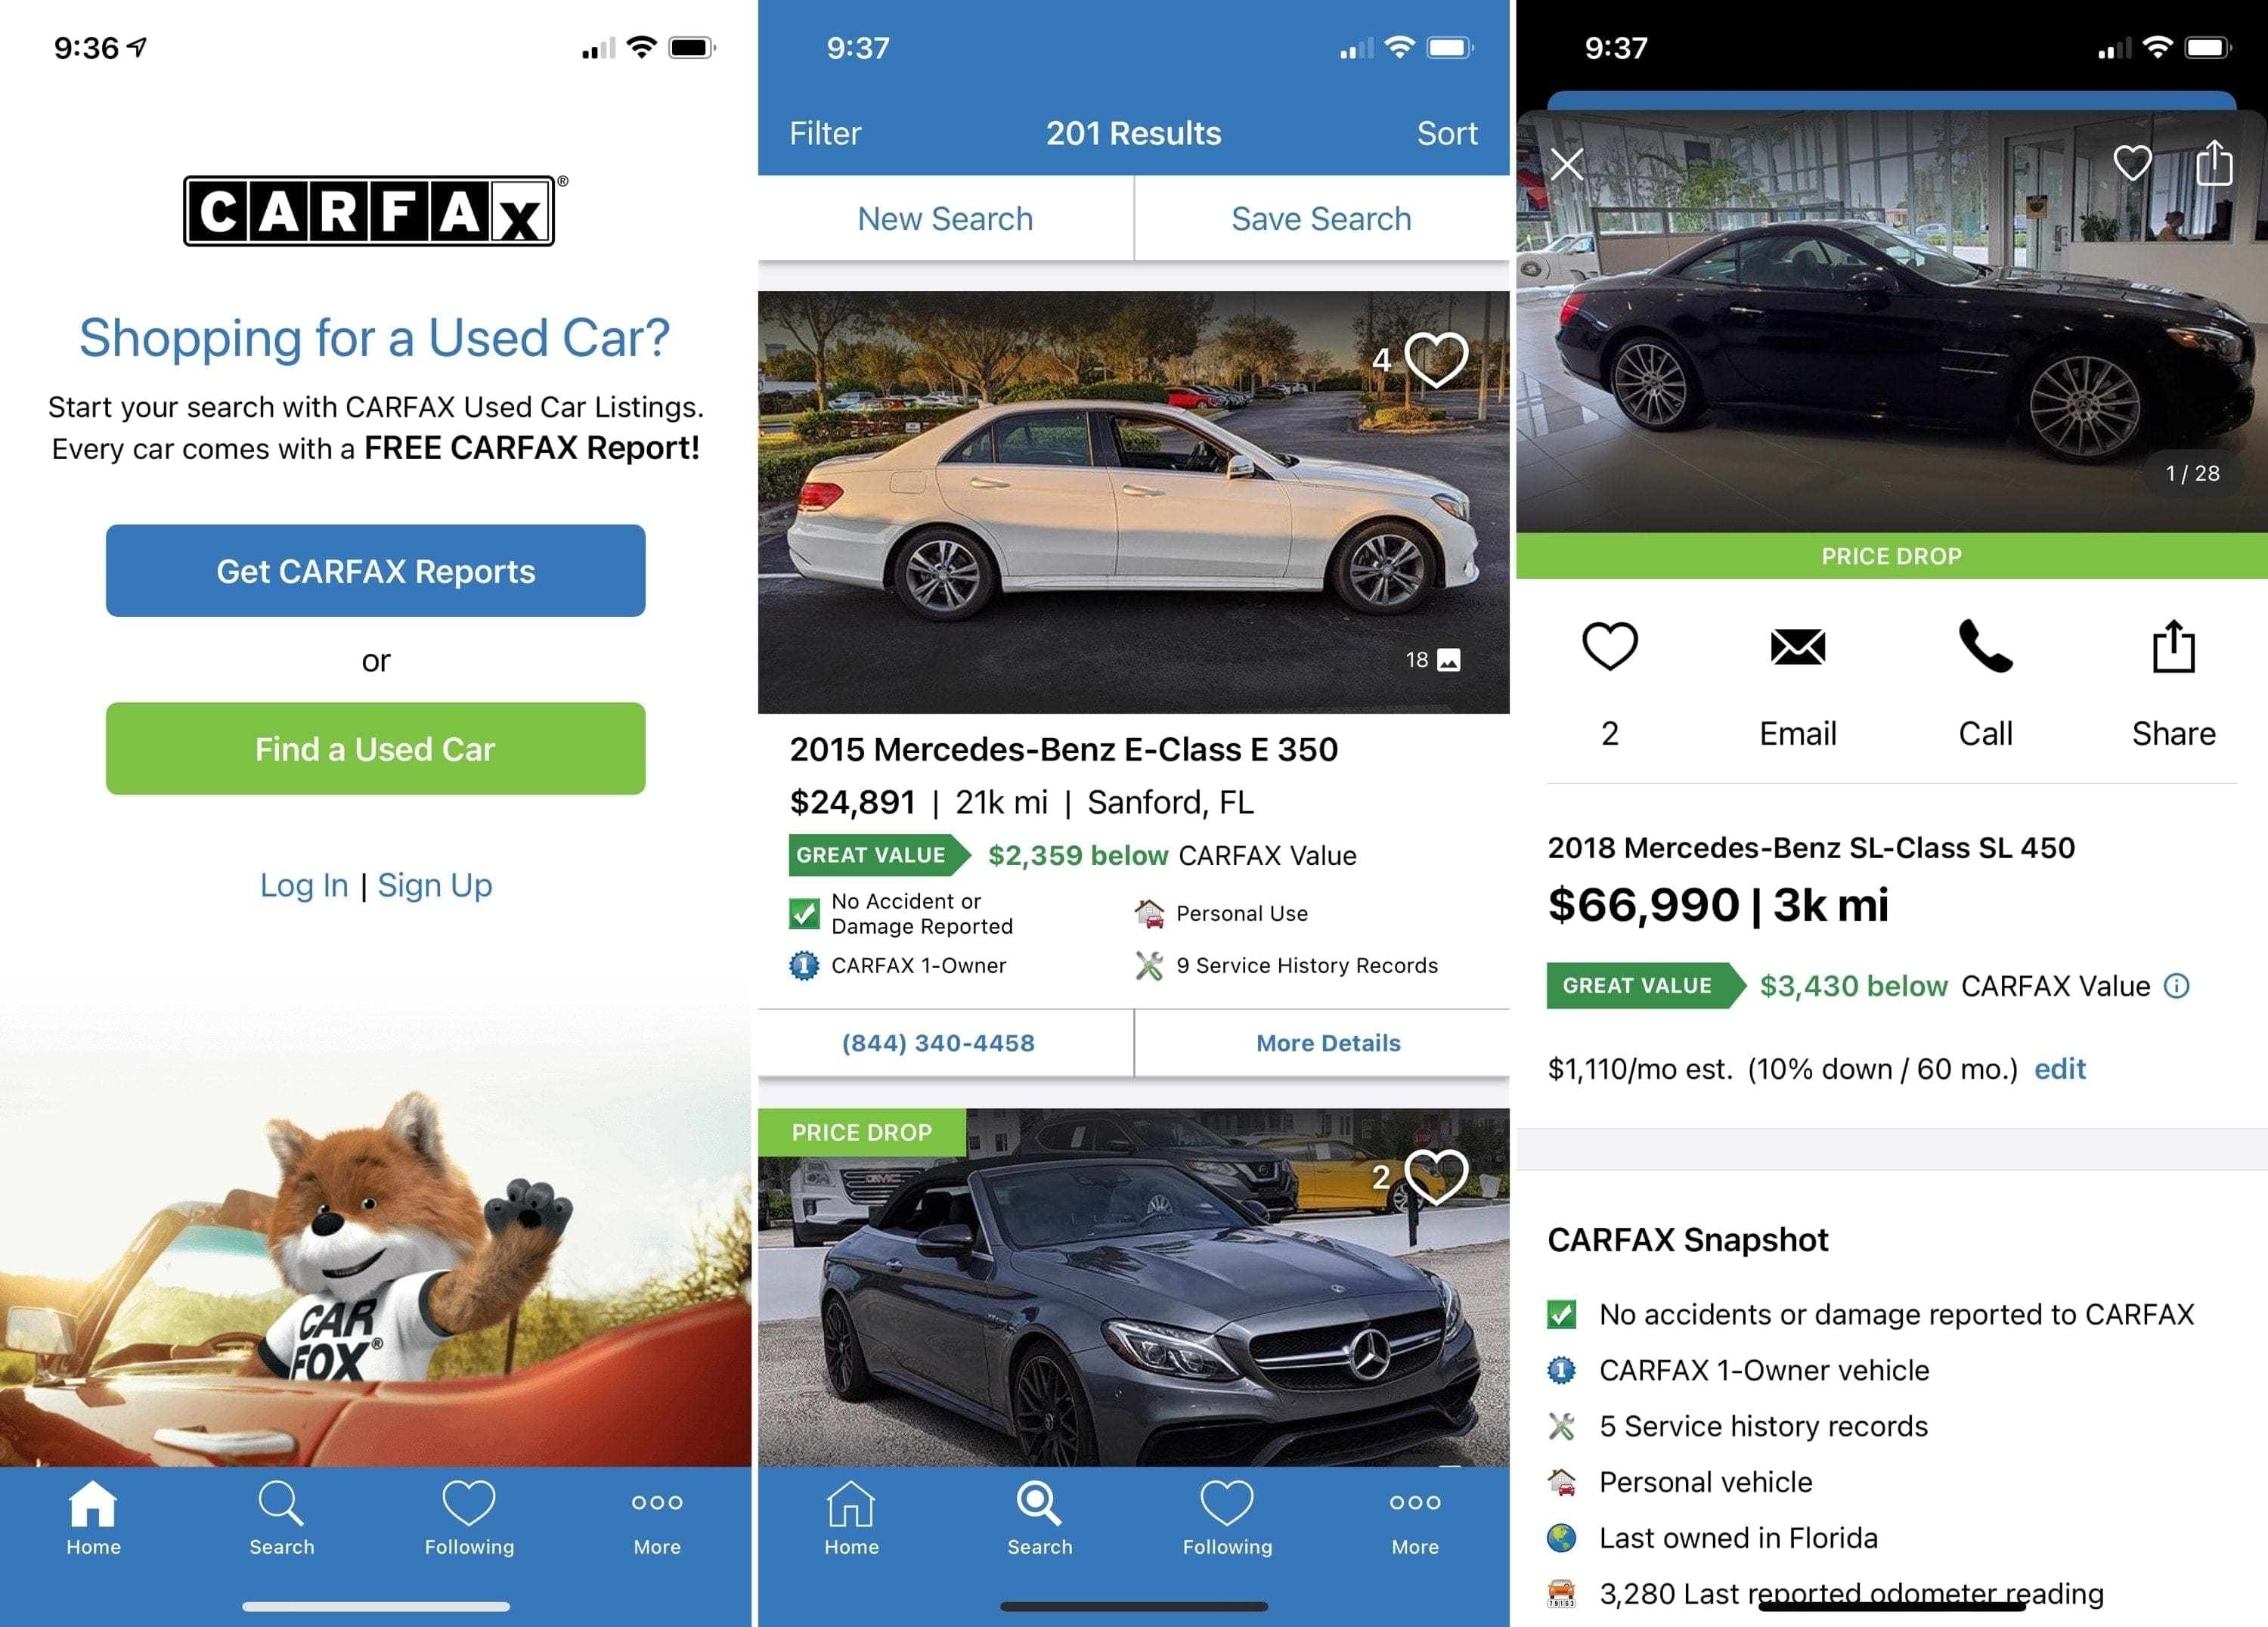 Apps for buying a car - CarFax on iPhone